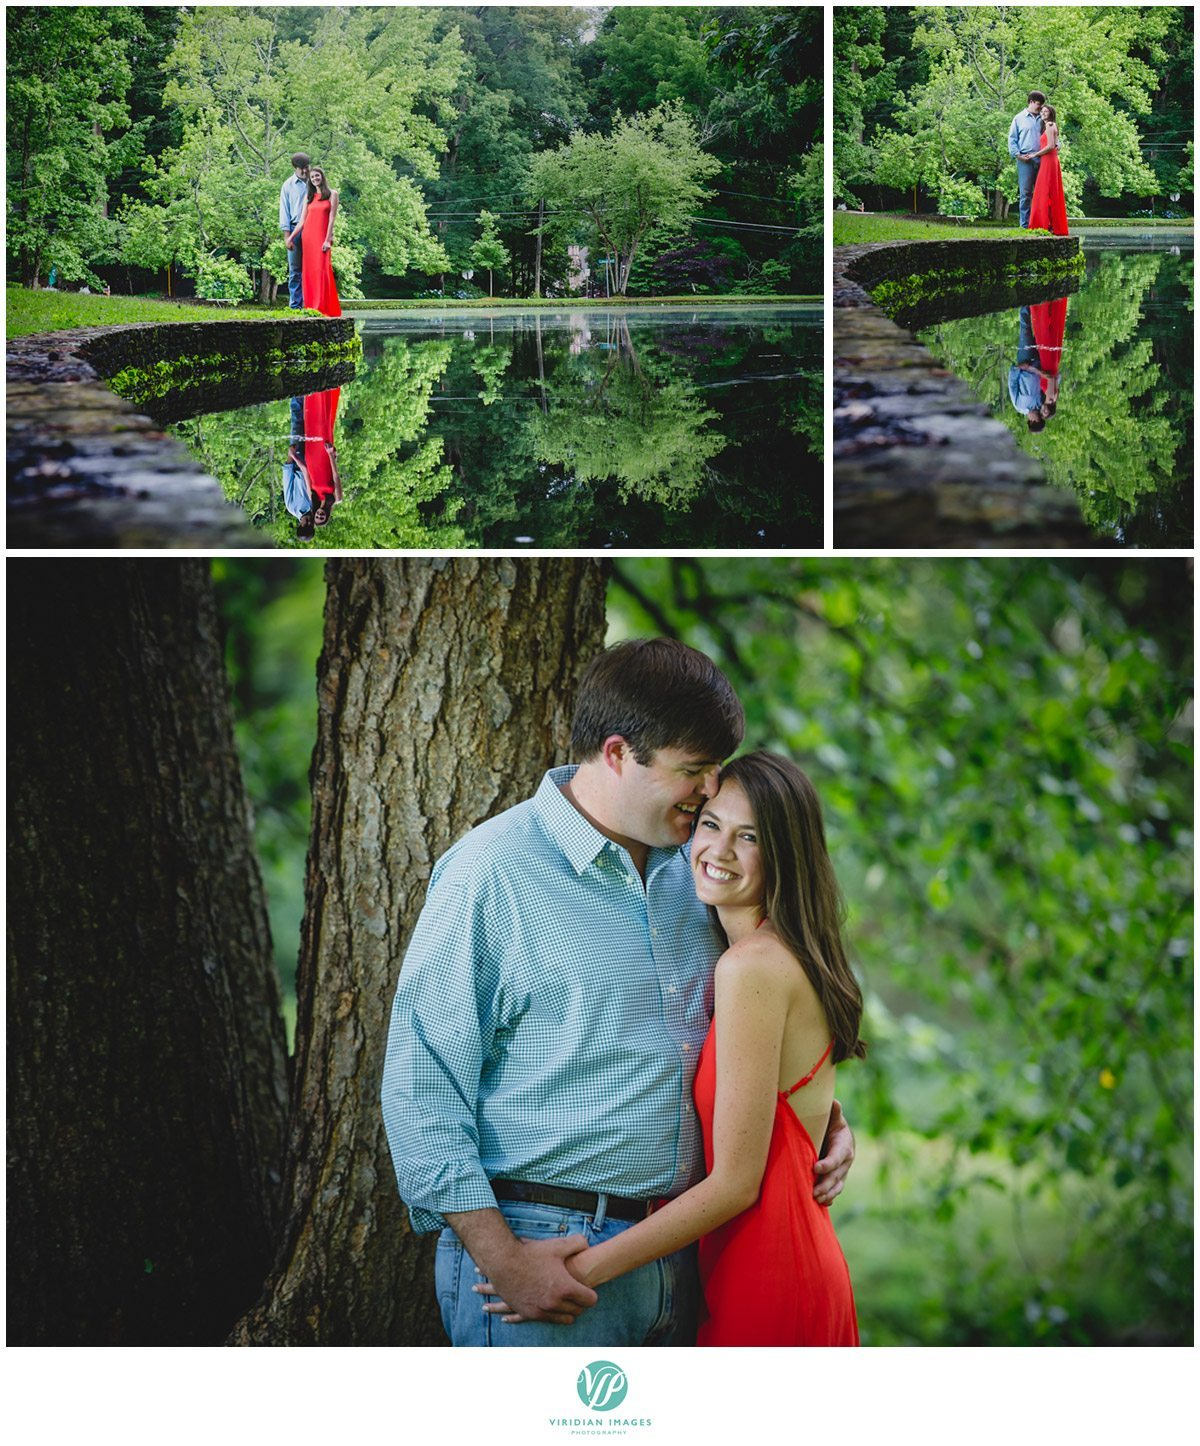 Atlanta-duck-poind-engagement-session-viridian-images-photography-photo-8